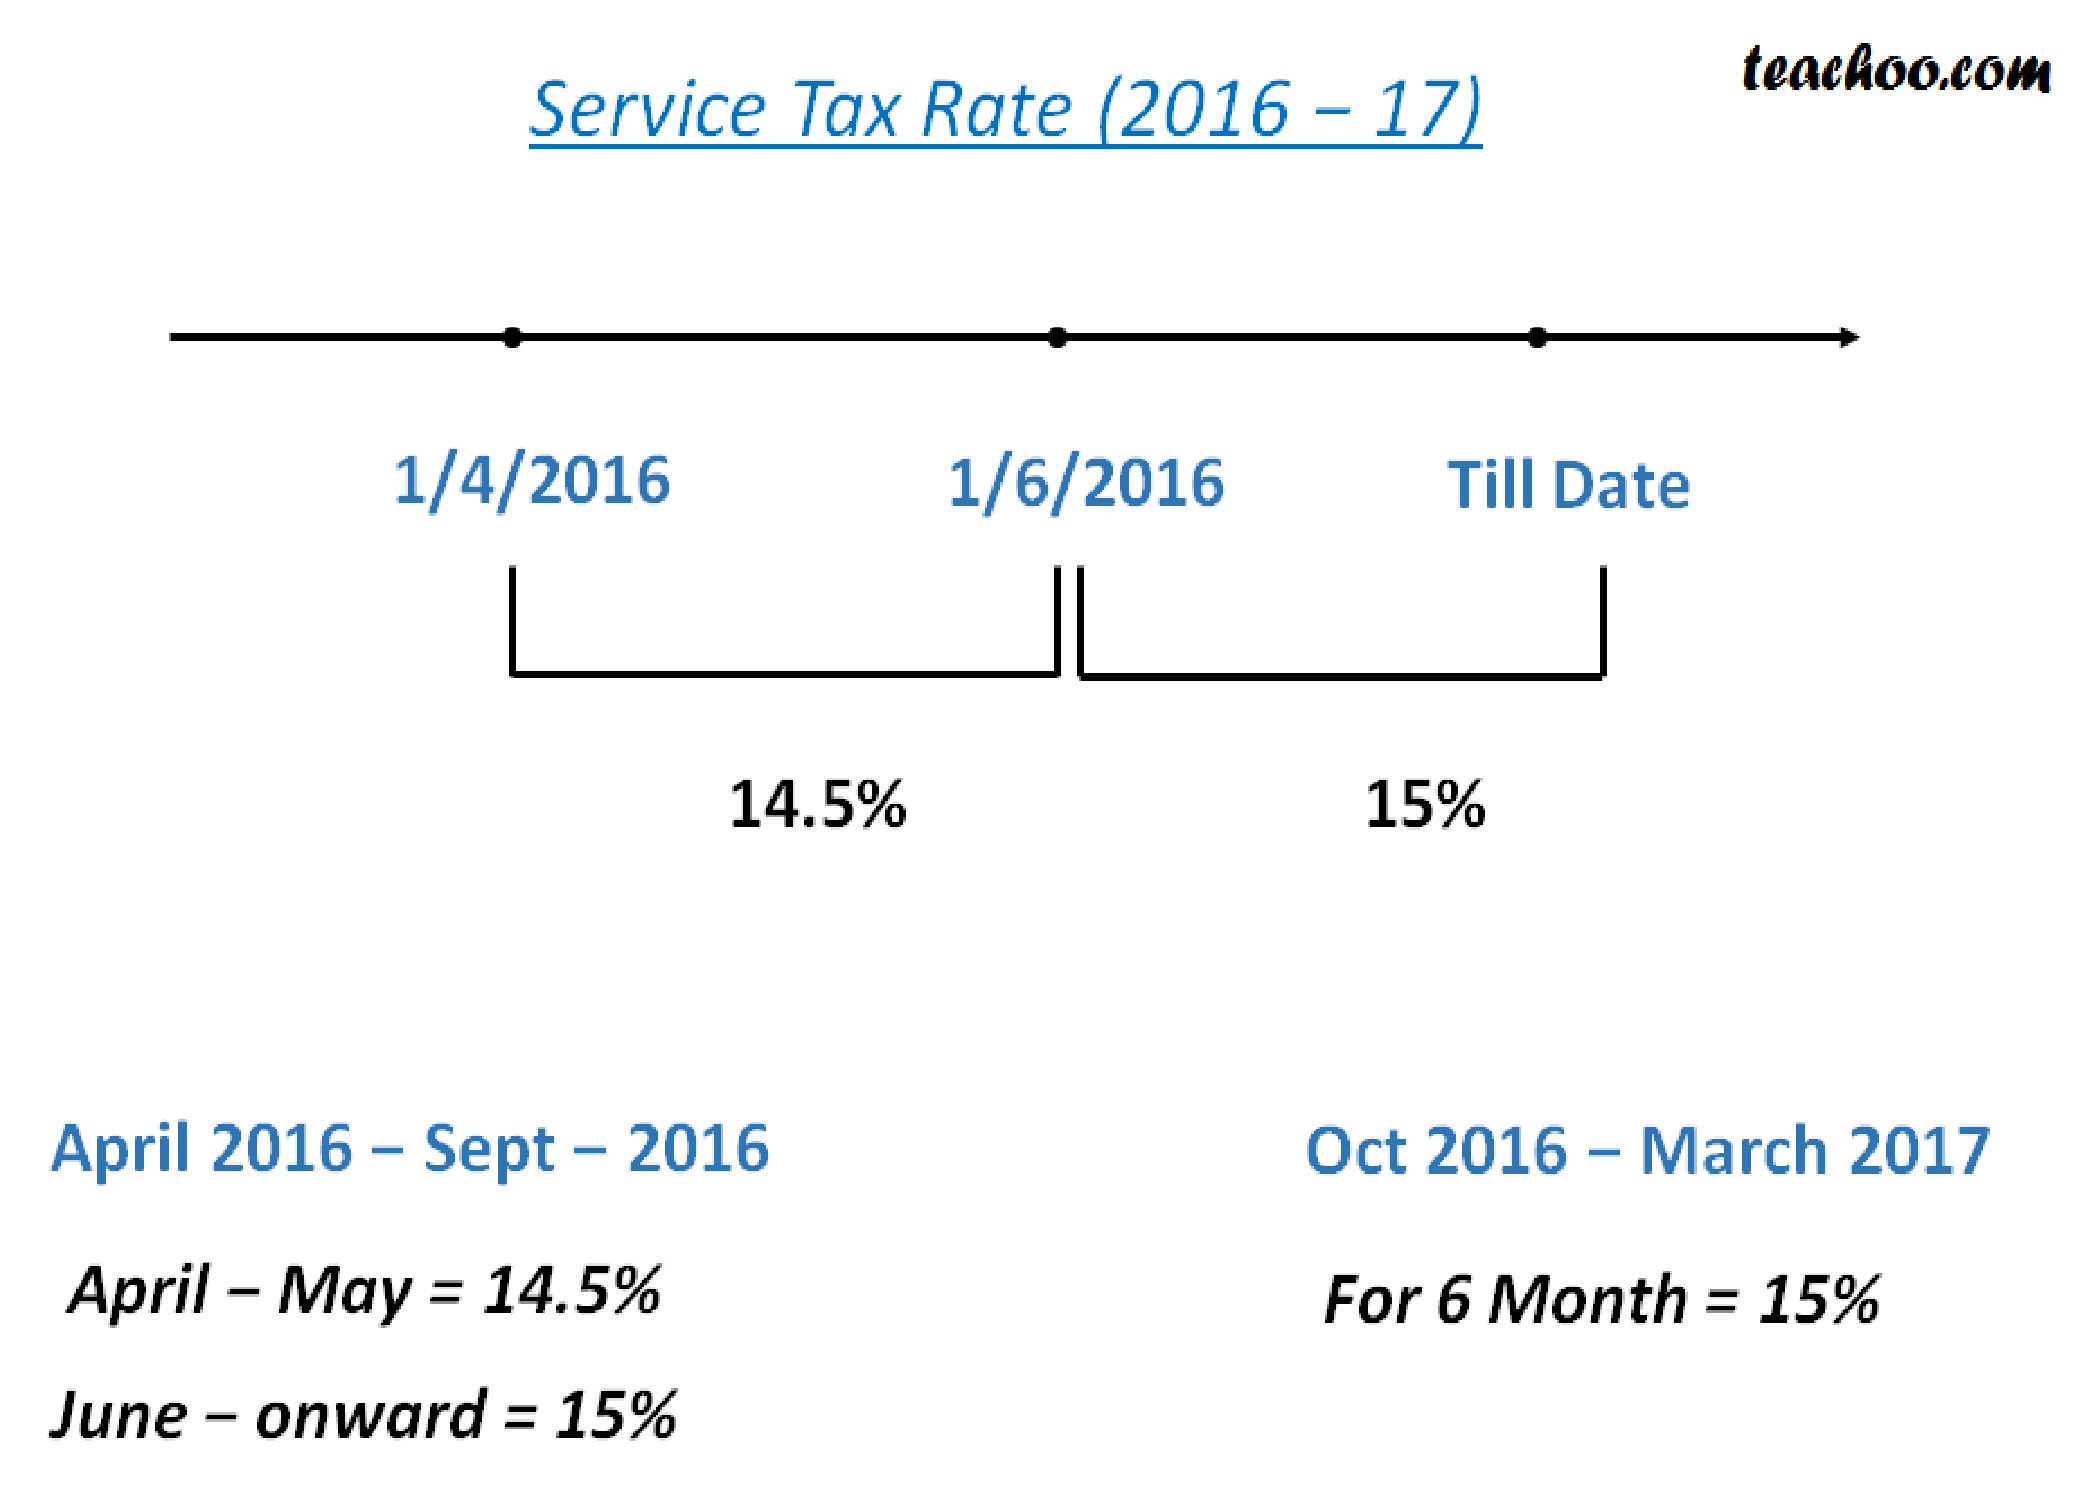 service tax image 2.png